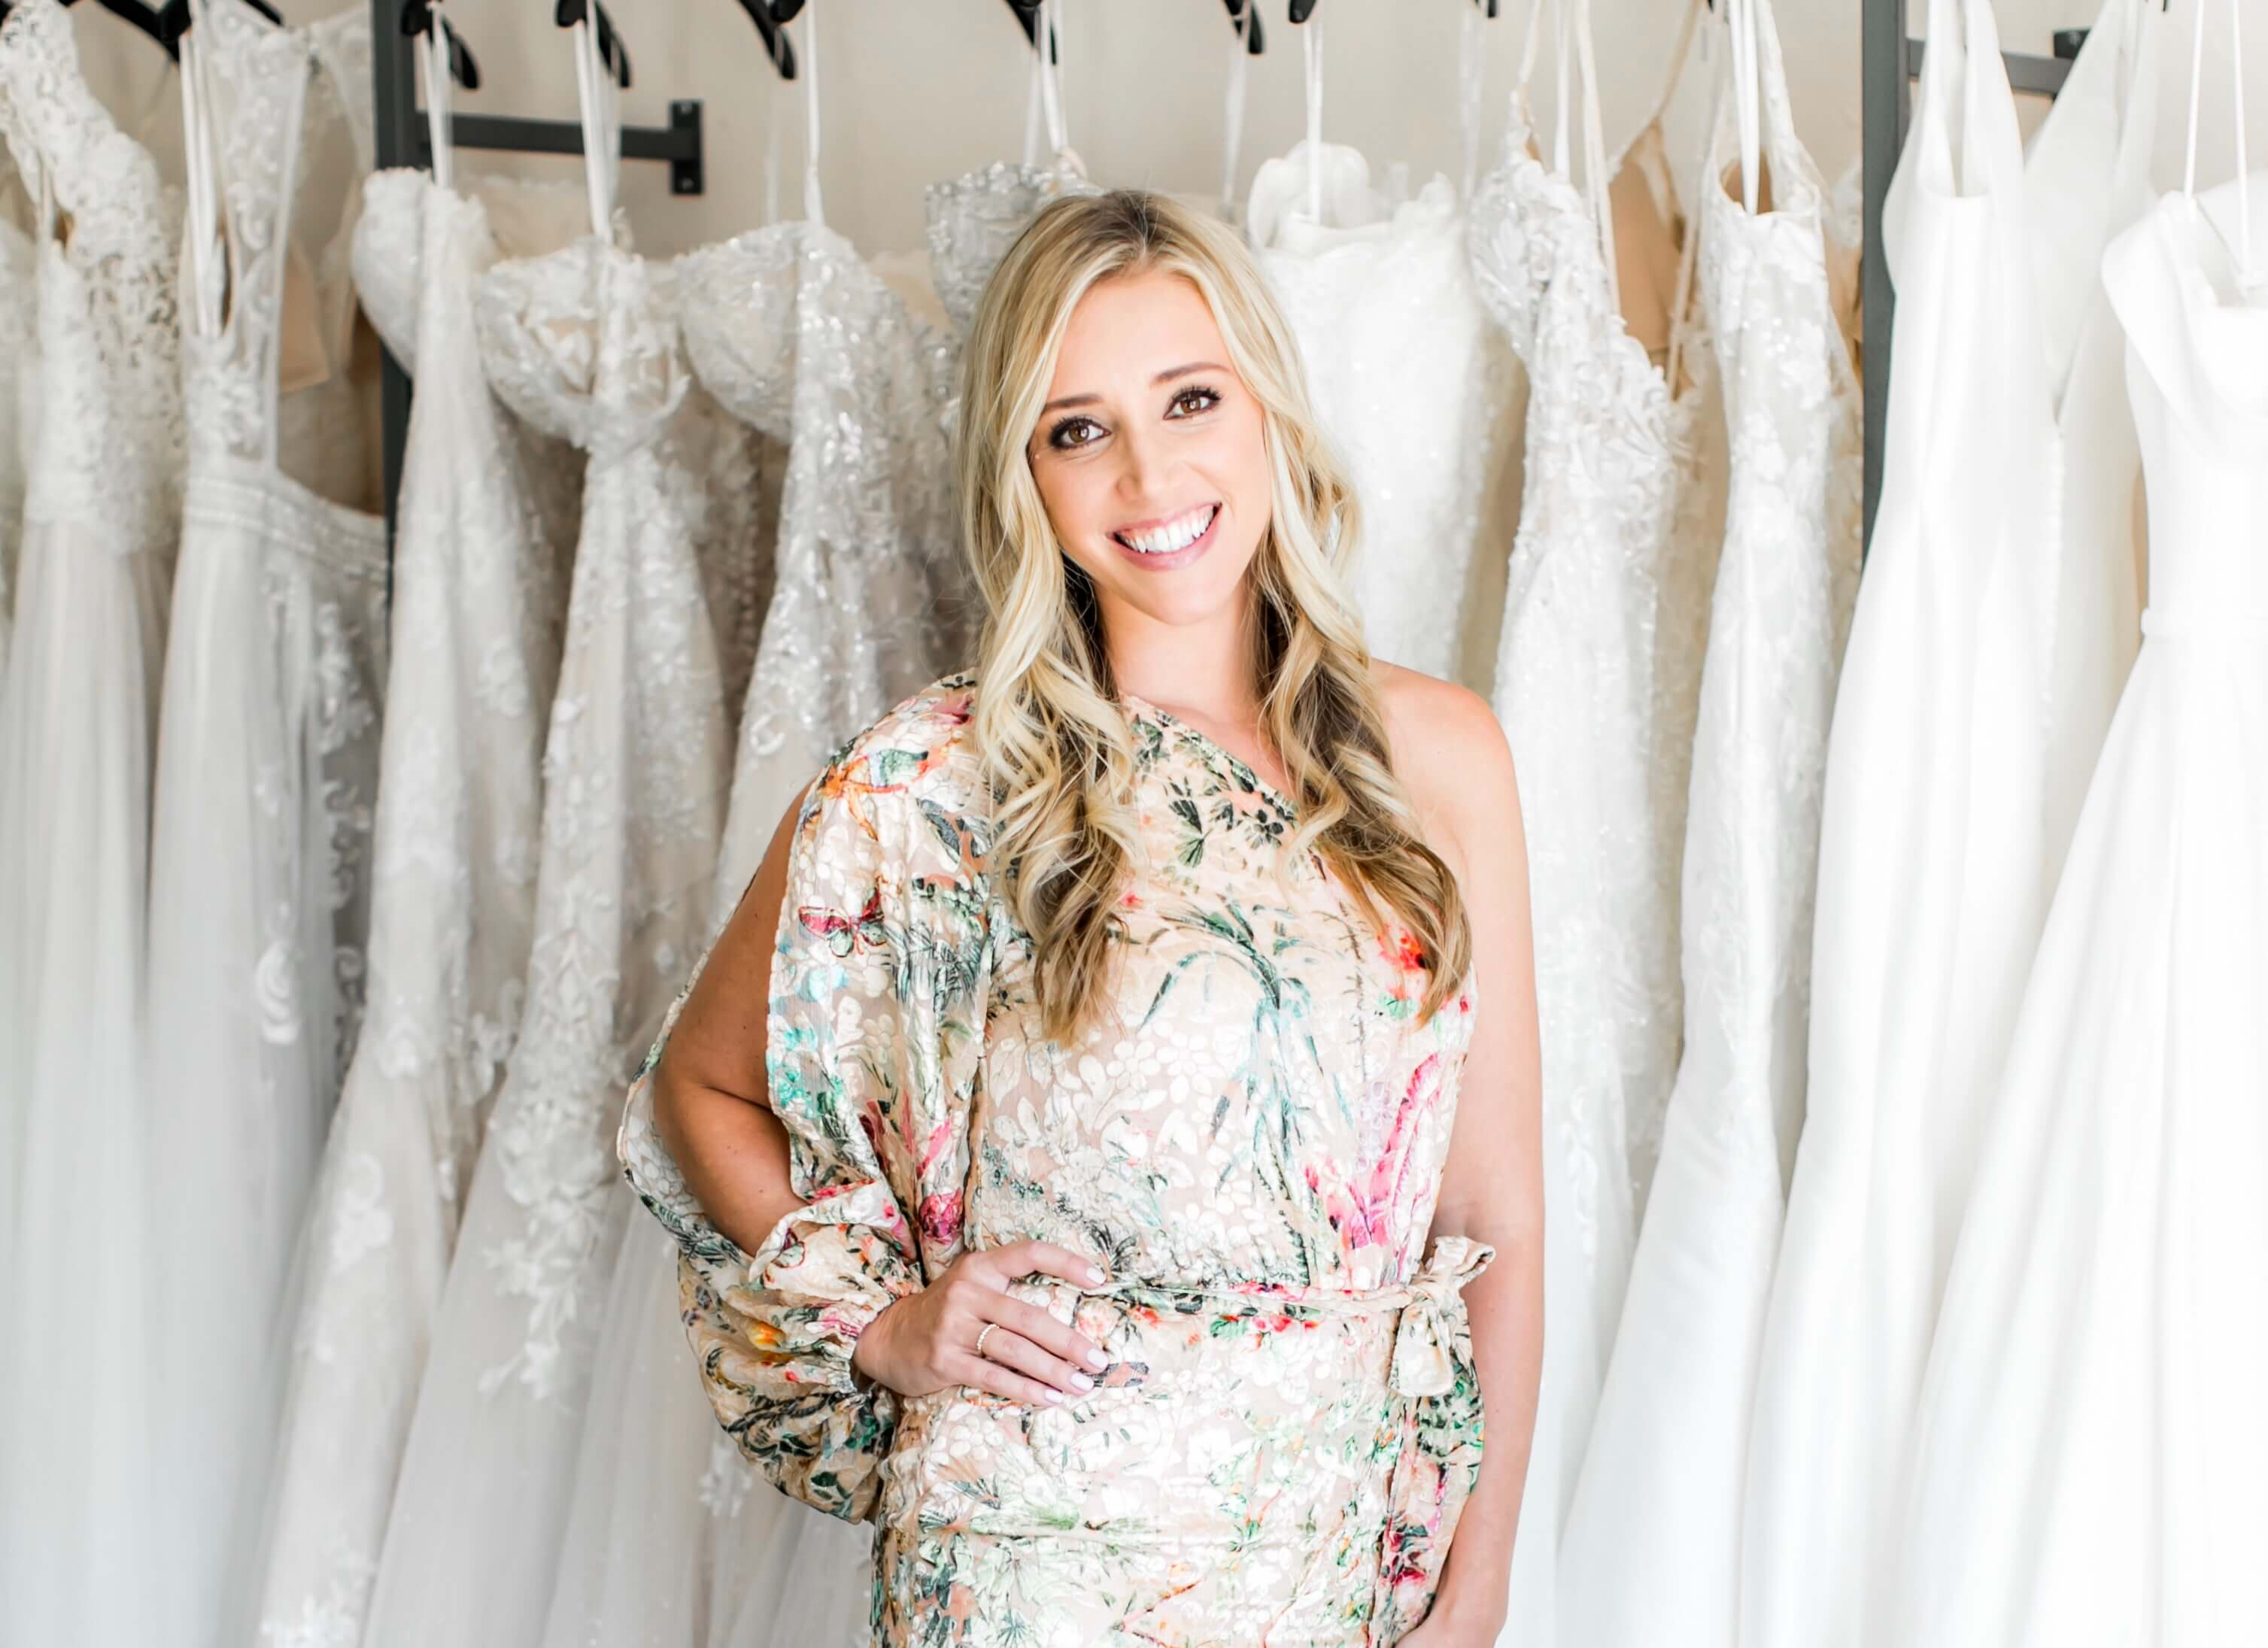 Melissa Moneypenny-Love a bridal boutique